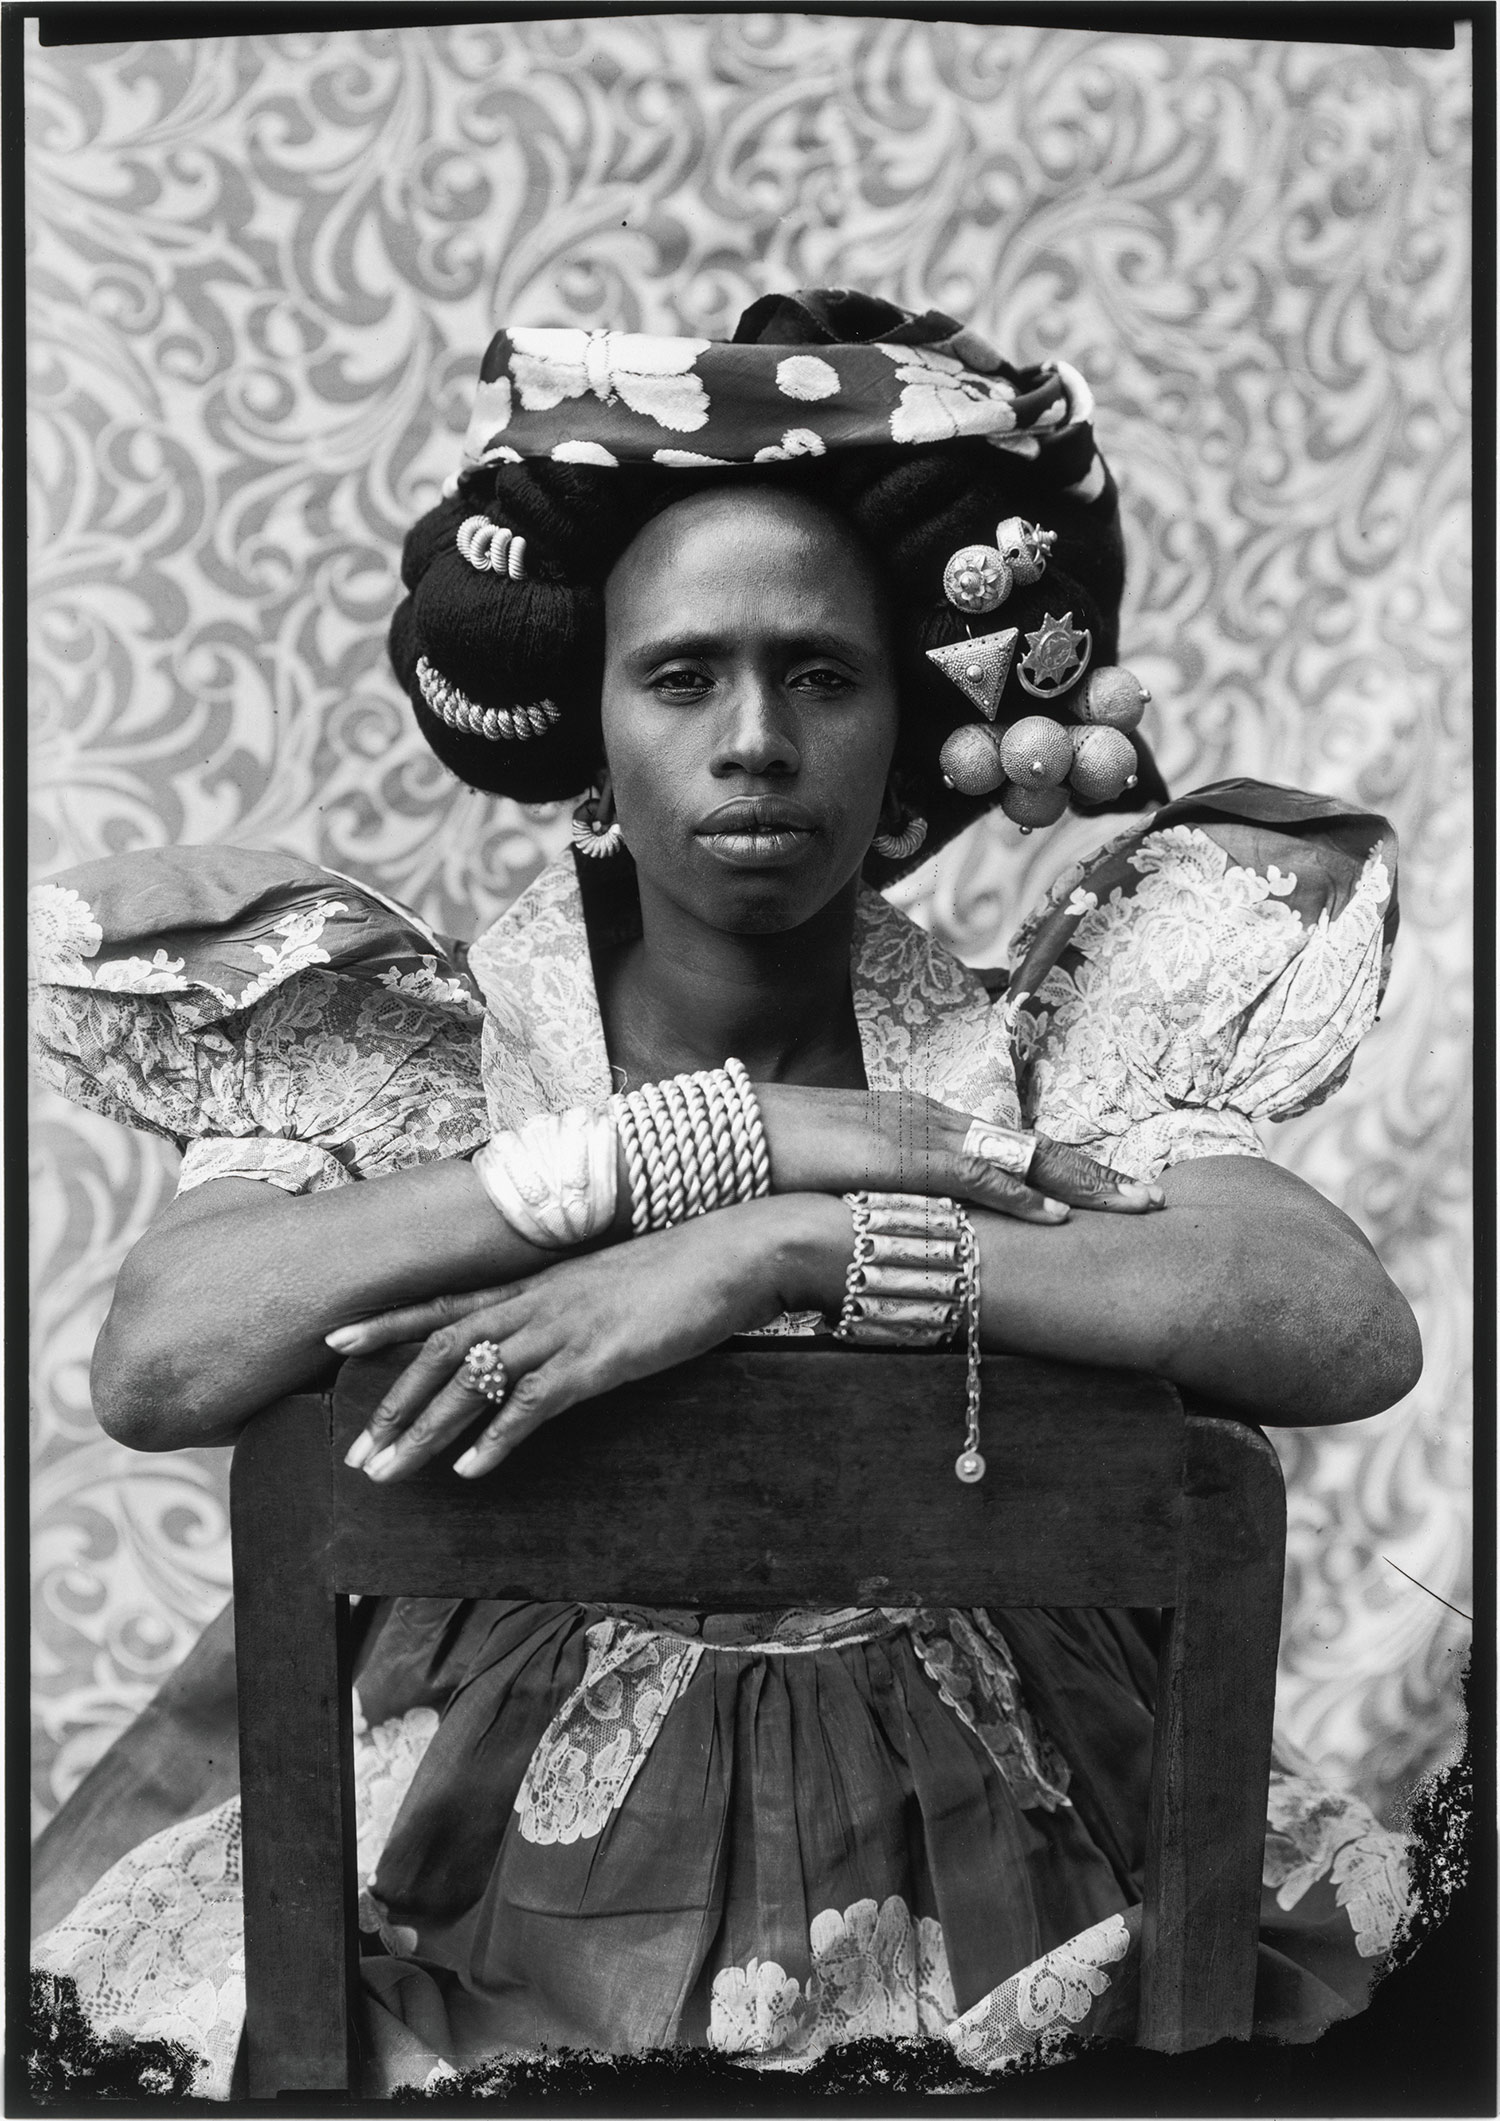 Black woman in front of printed fabric, sitting on chair